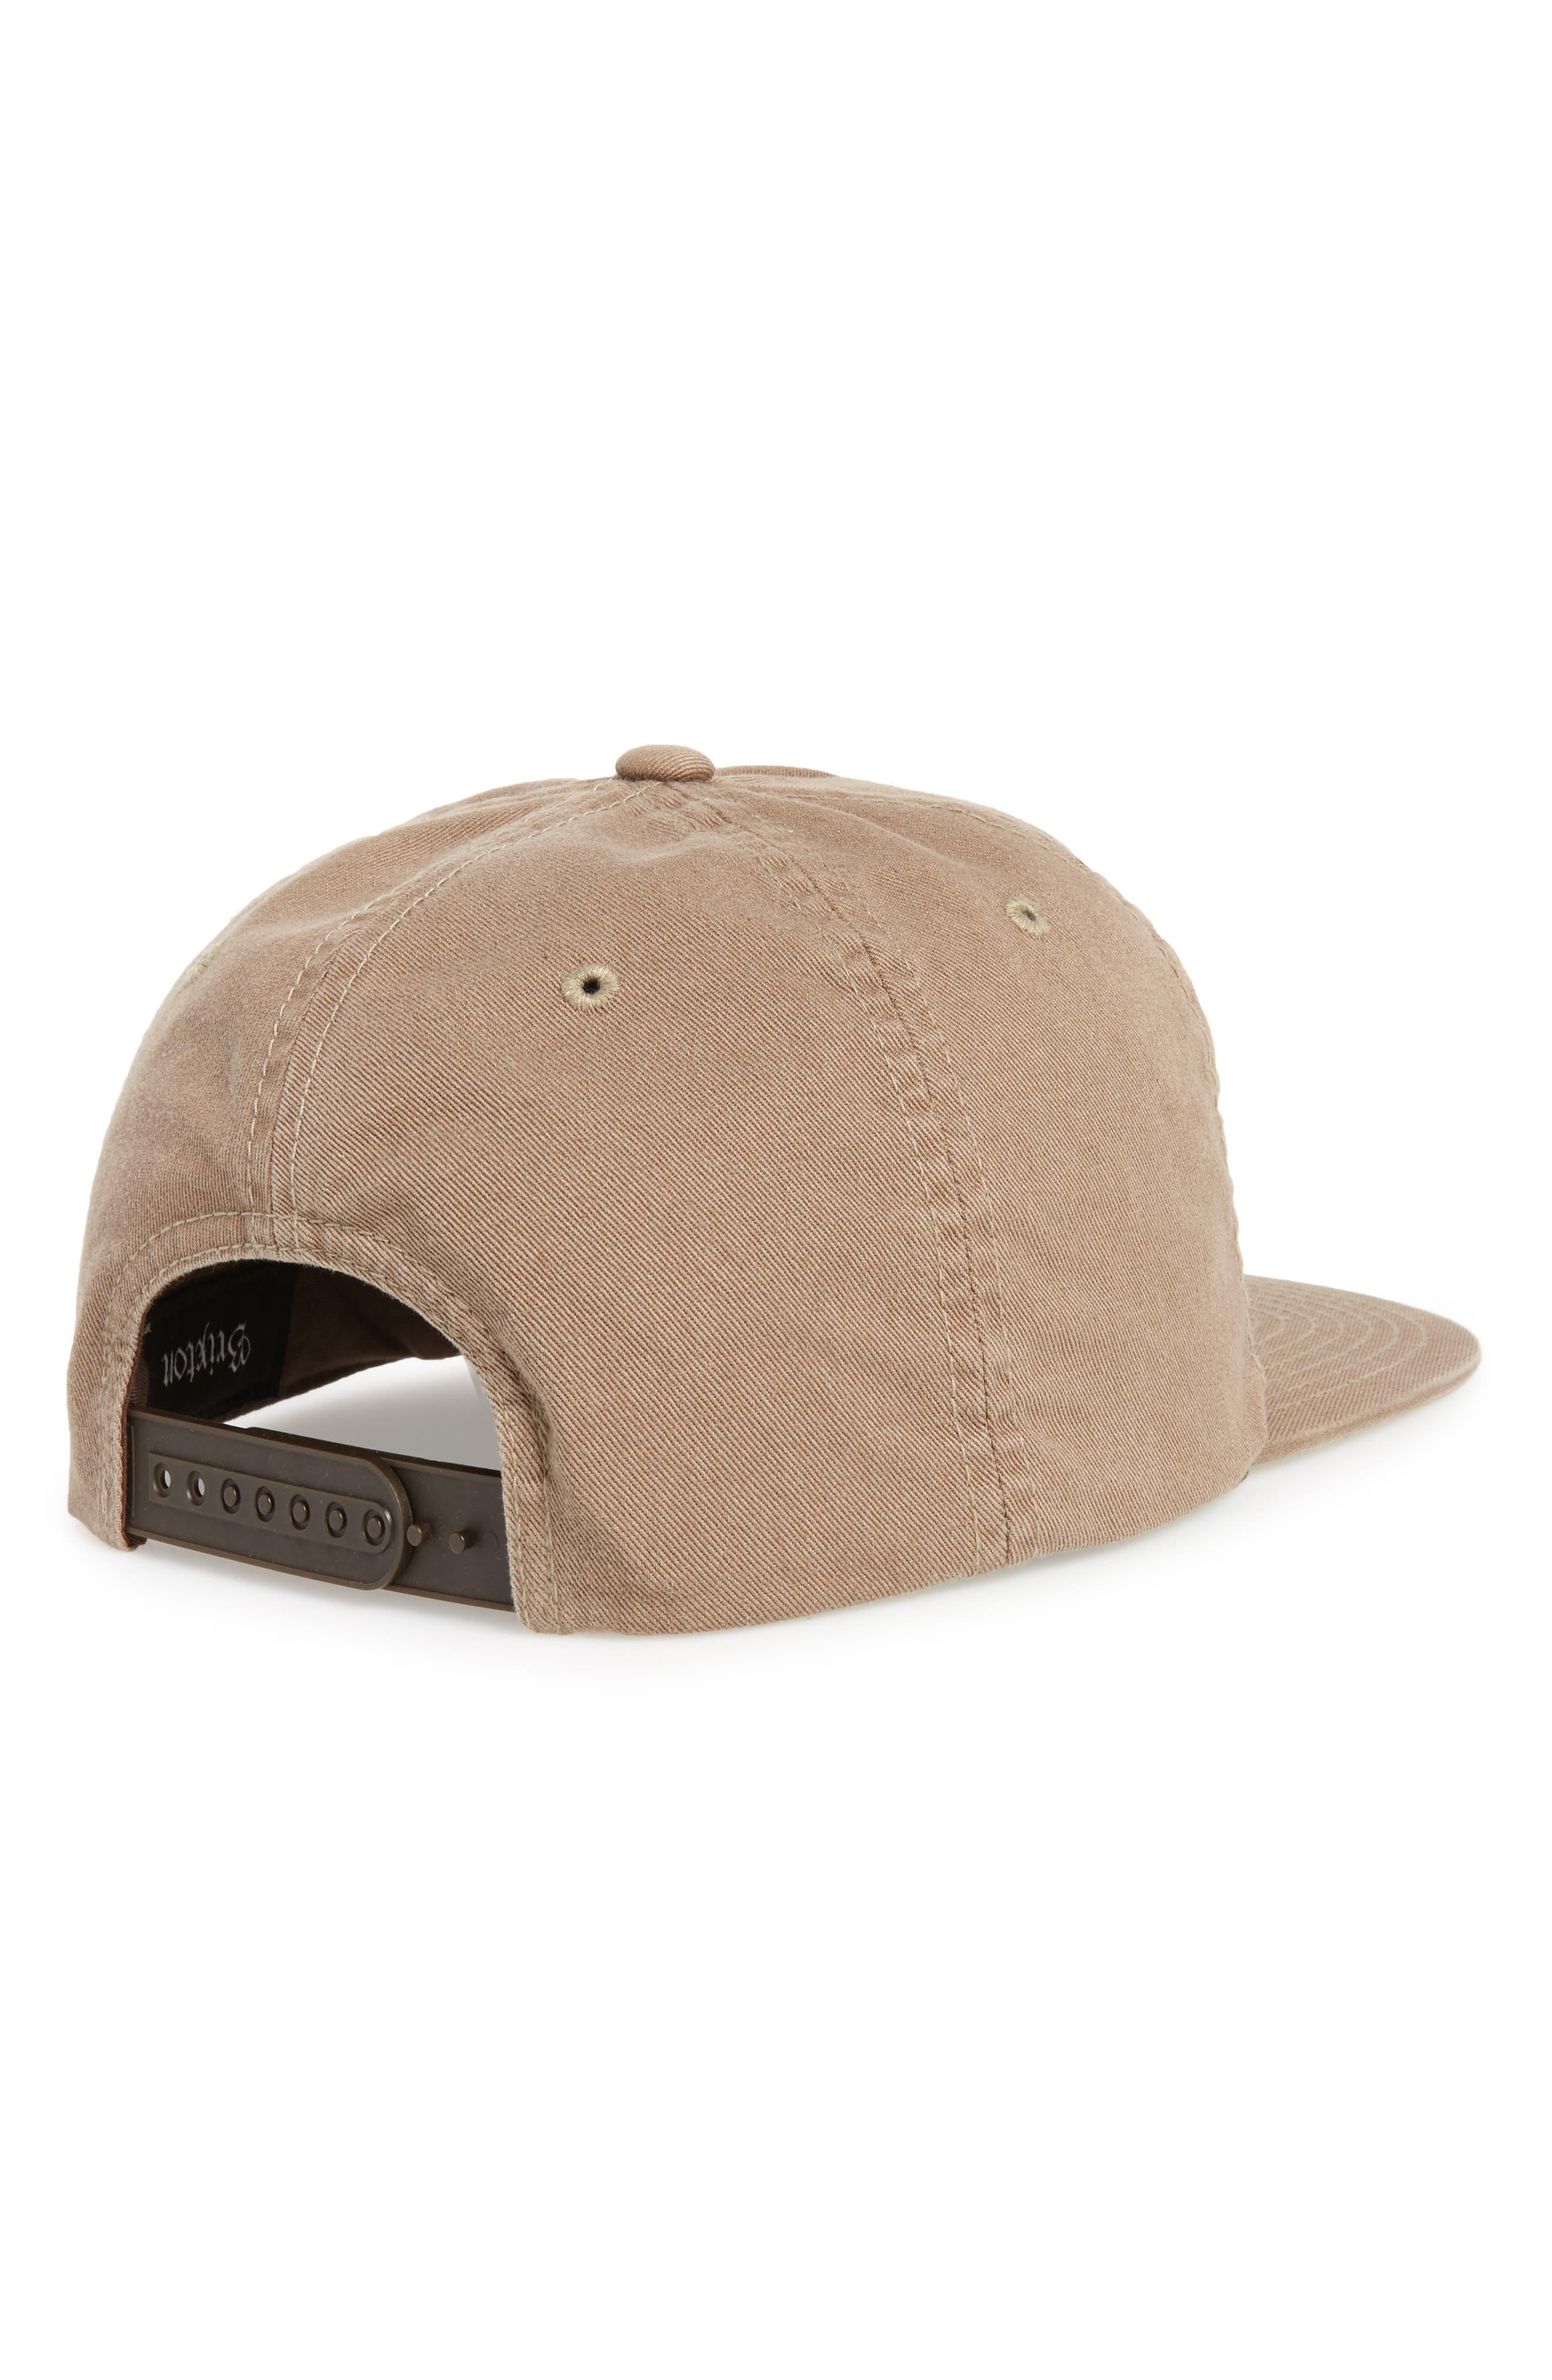 Grade II Snapback Baseball Cap,                             Alternate thumbnail 2, color,                             Washed Mocha